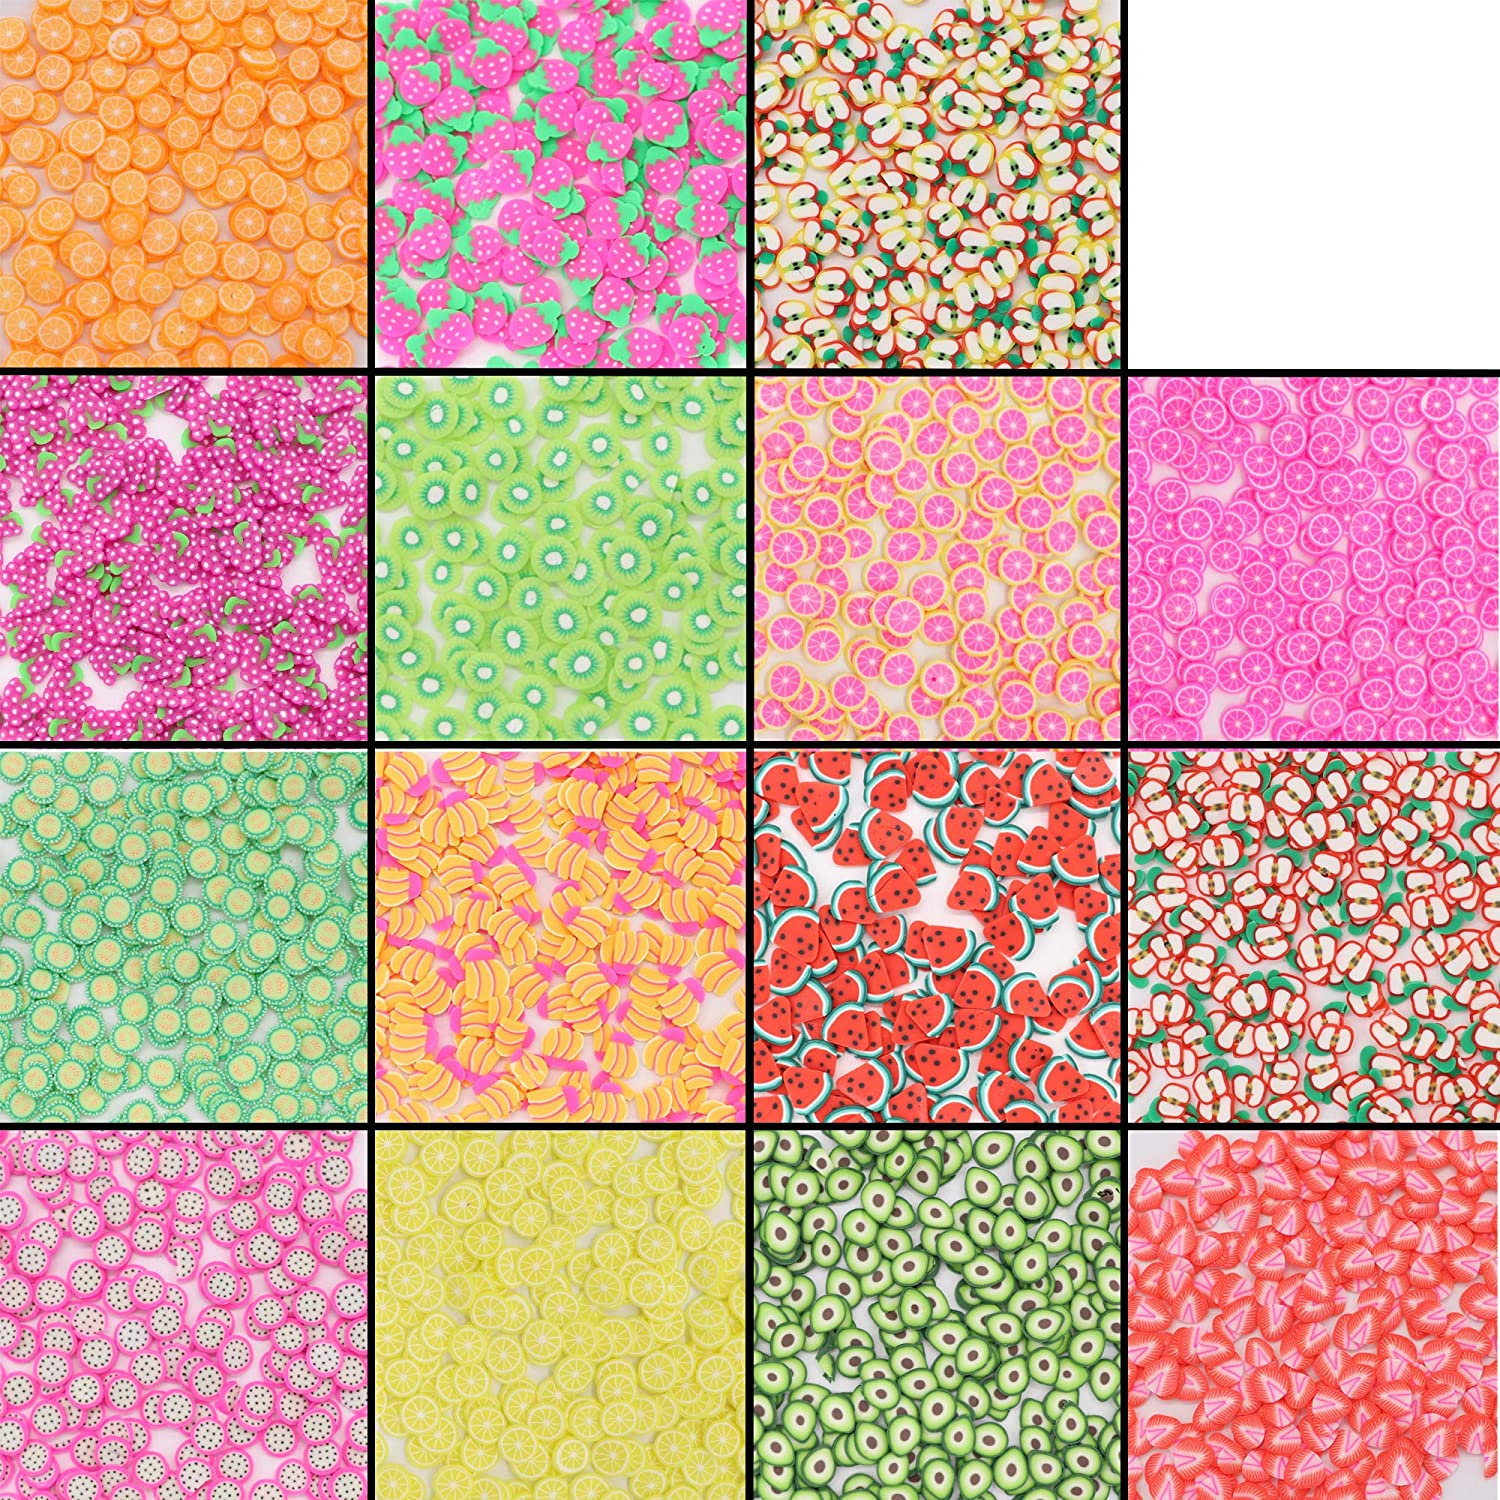 Crafare 5000 PC Nail Art Slices 3D Fruits Animals Flowers Cake Heart Stickers Polymer Slices for Christmas Holiday DIY Crafts, Slime Making and Cellphone Decoration